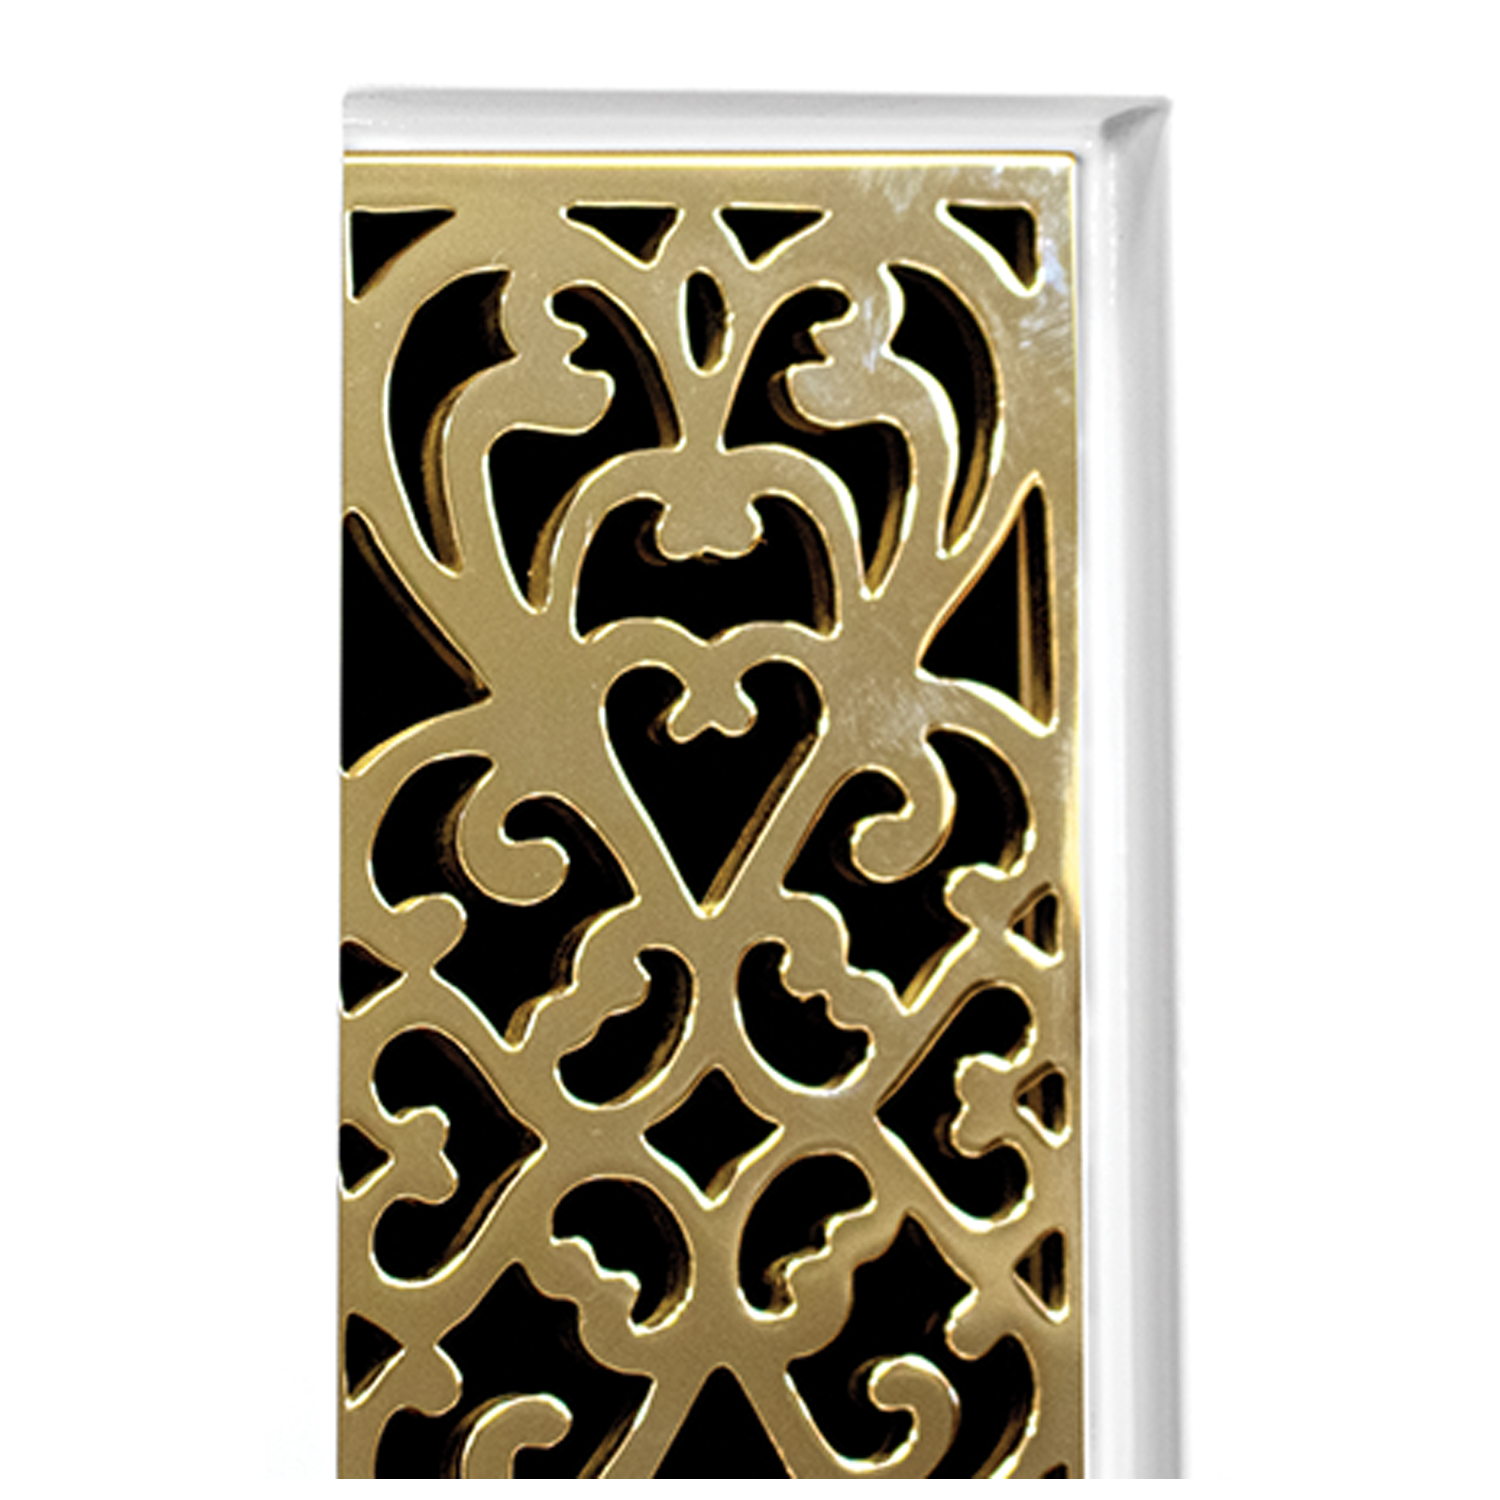 White Frame with Filigree Door Detail - Shown with PB (Polished Brass)